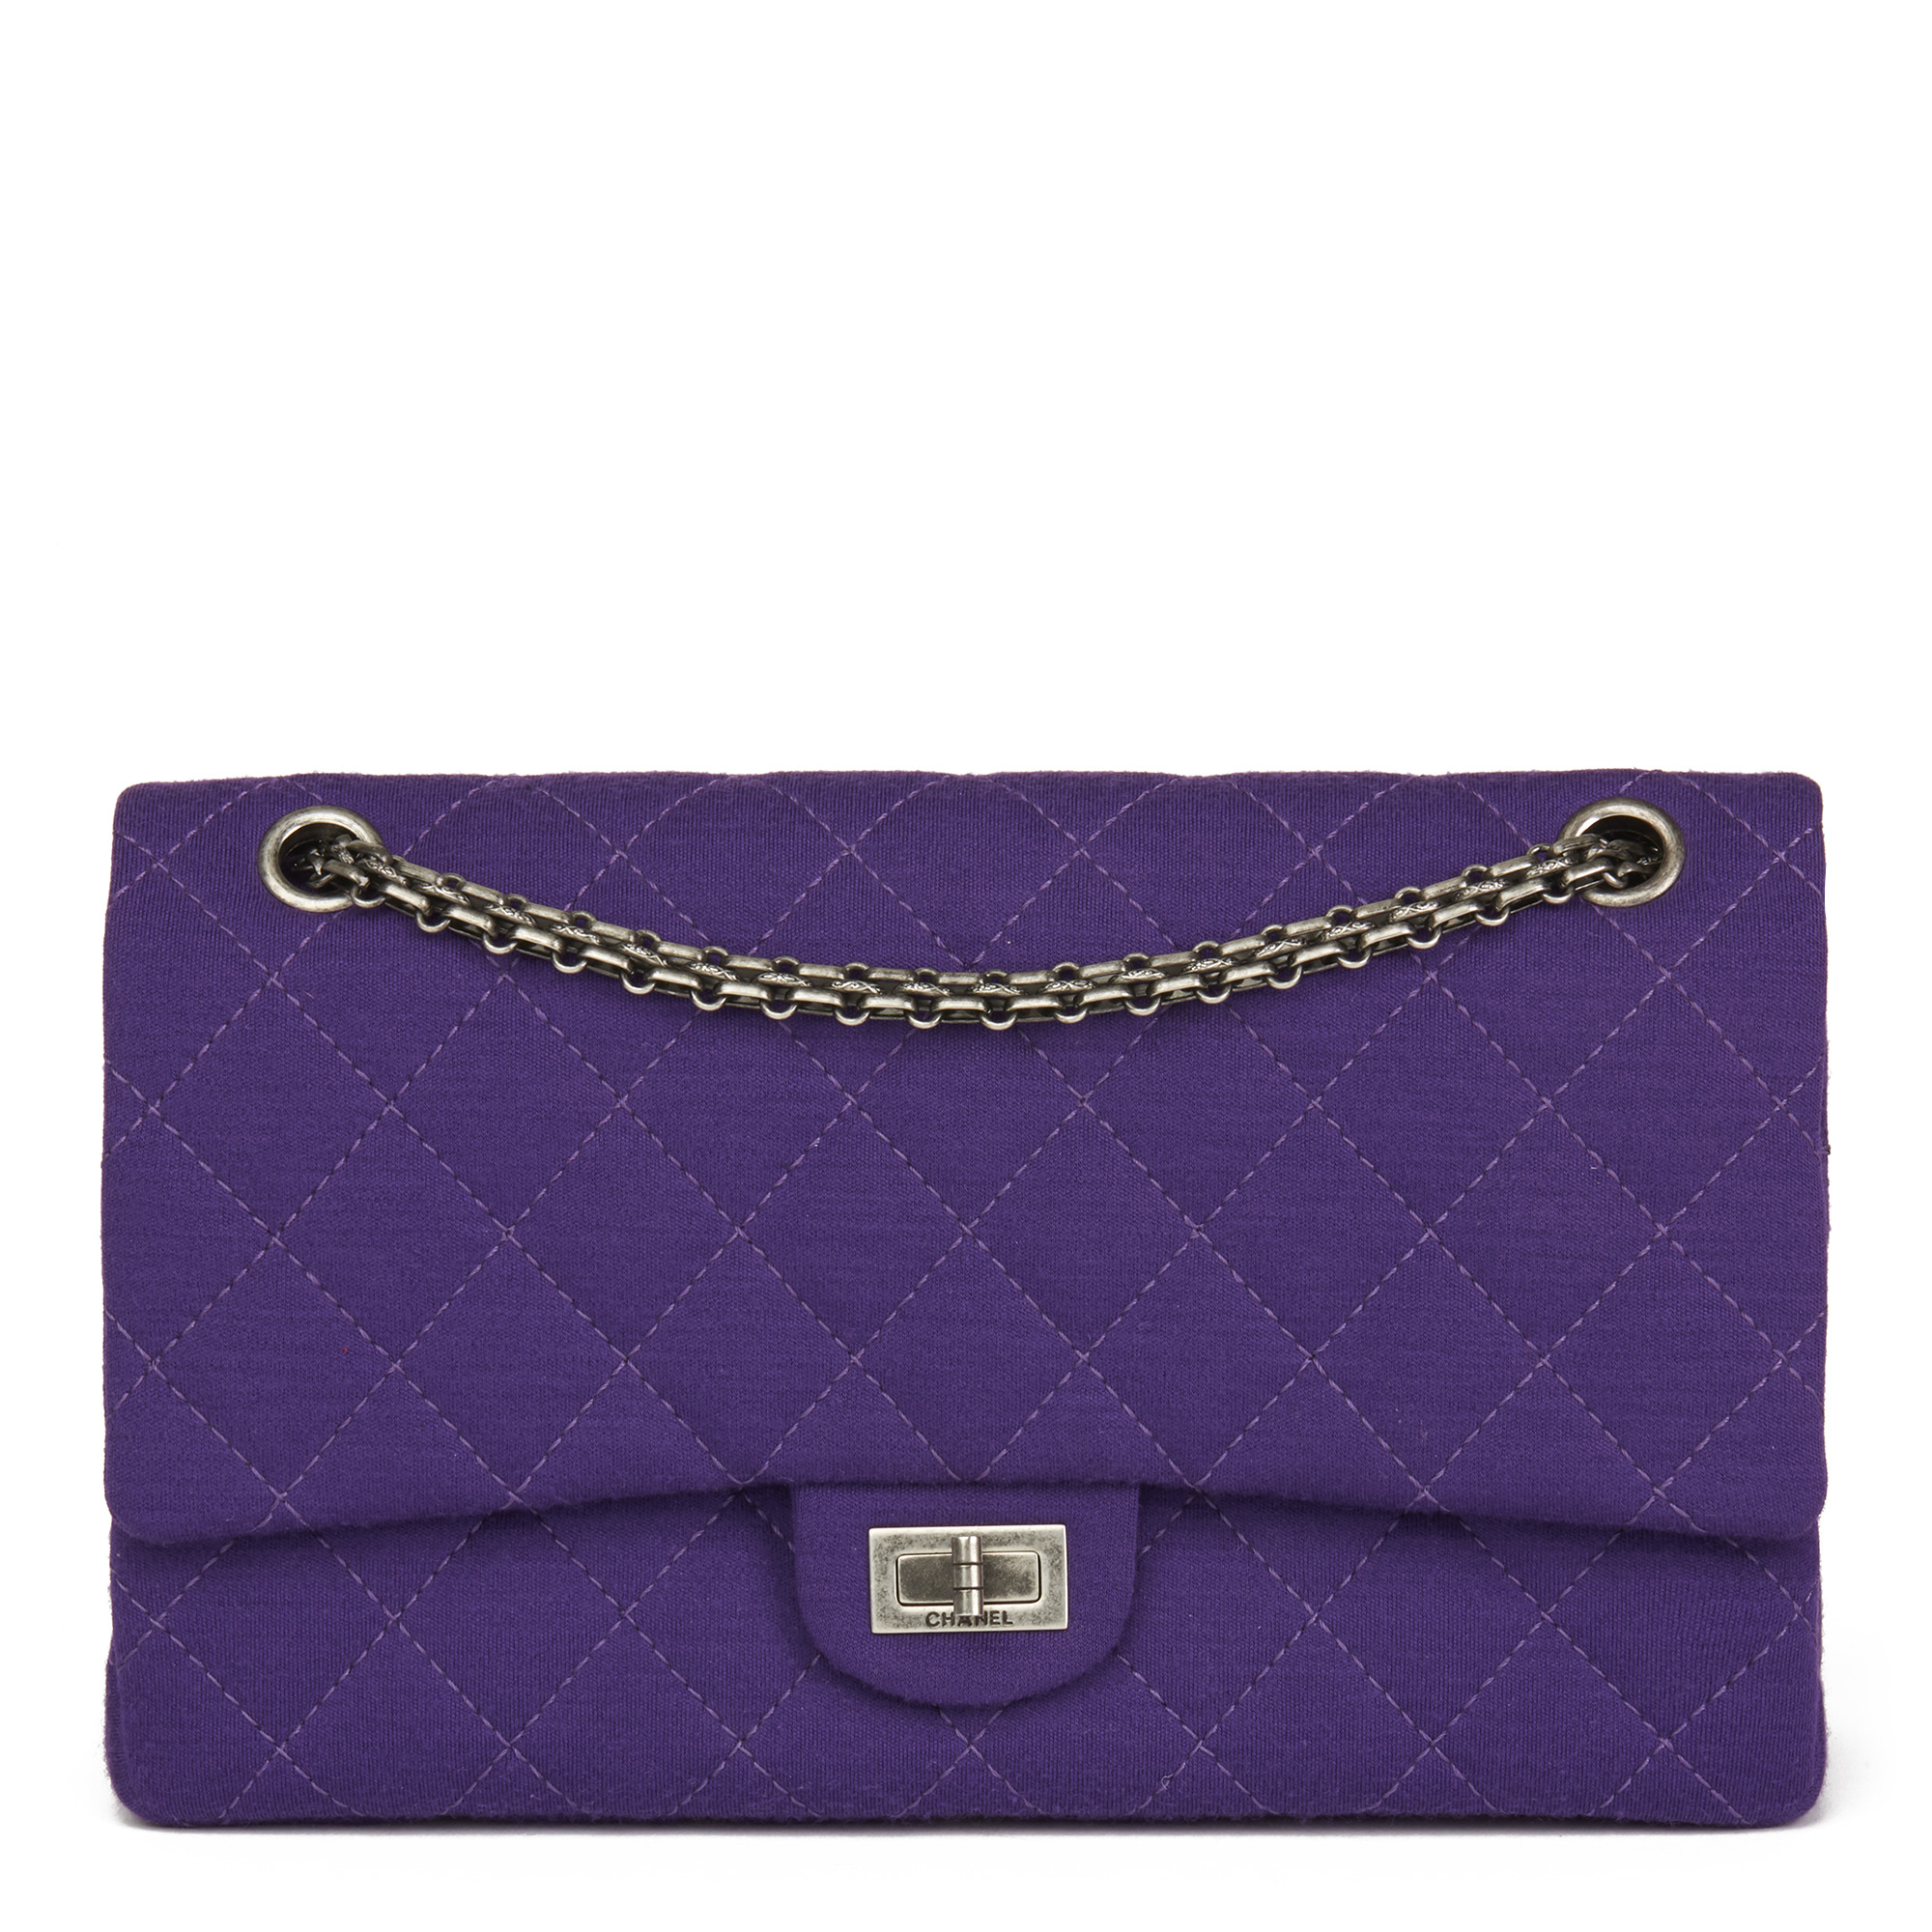 847331c886a4 CHANEL PURPLE QUILTED JERSEY FABRIC 2.55 REISSUE 226 DOUBLE FLAP BAG ...